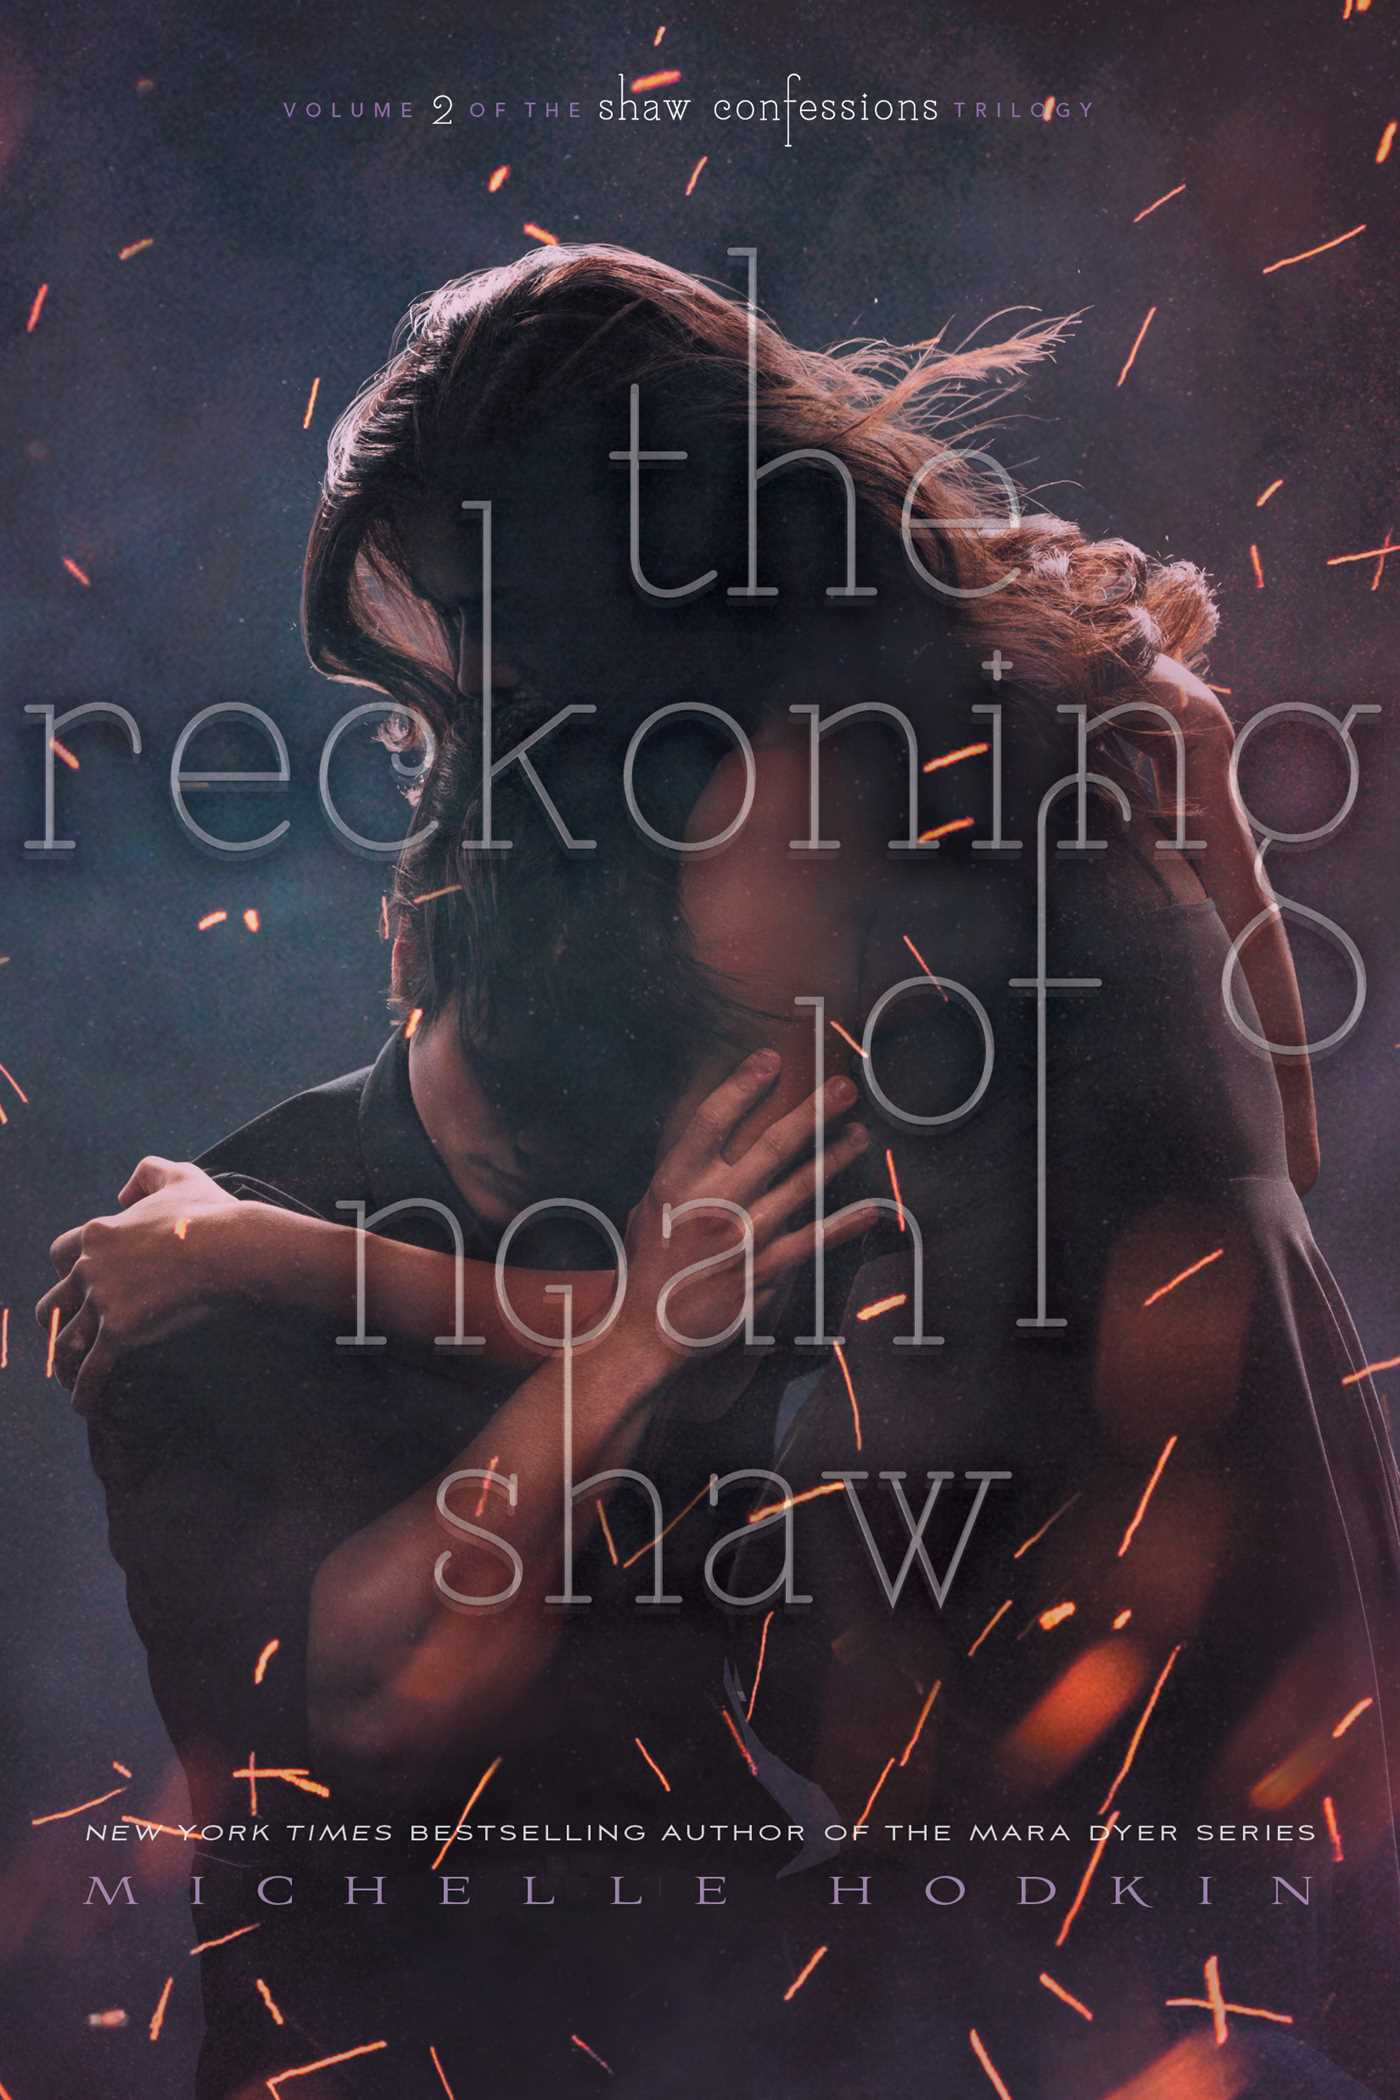 Image result for the reckoning of noah shaw cover